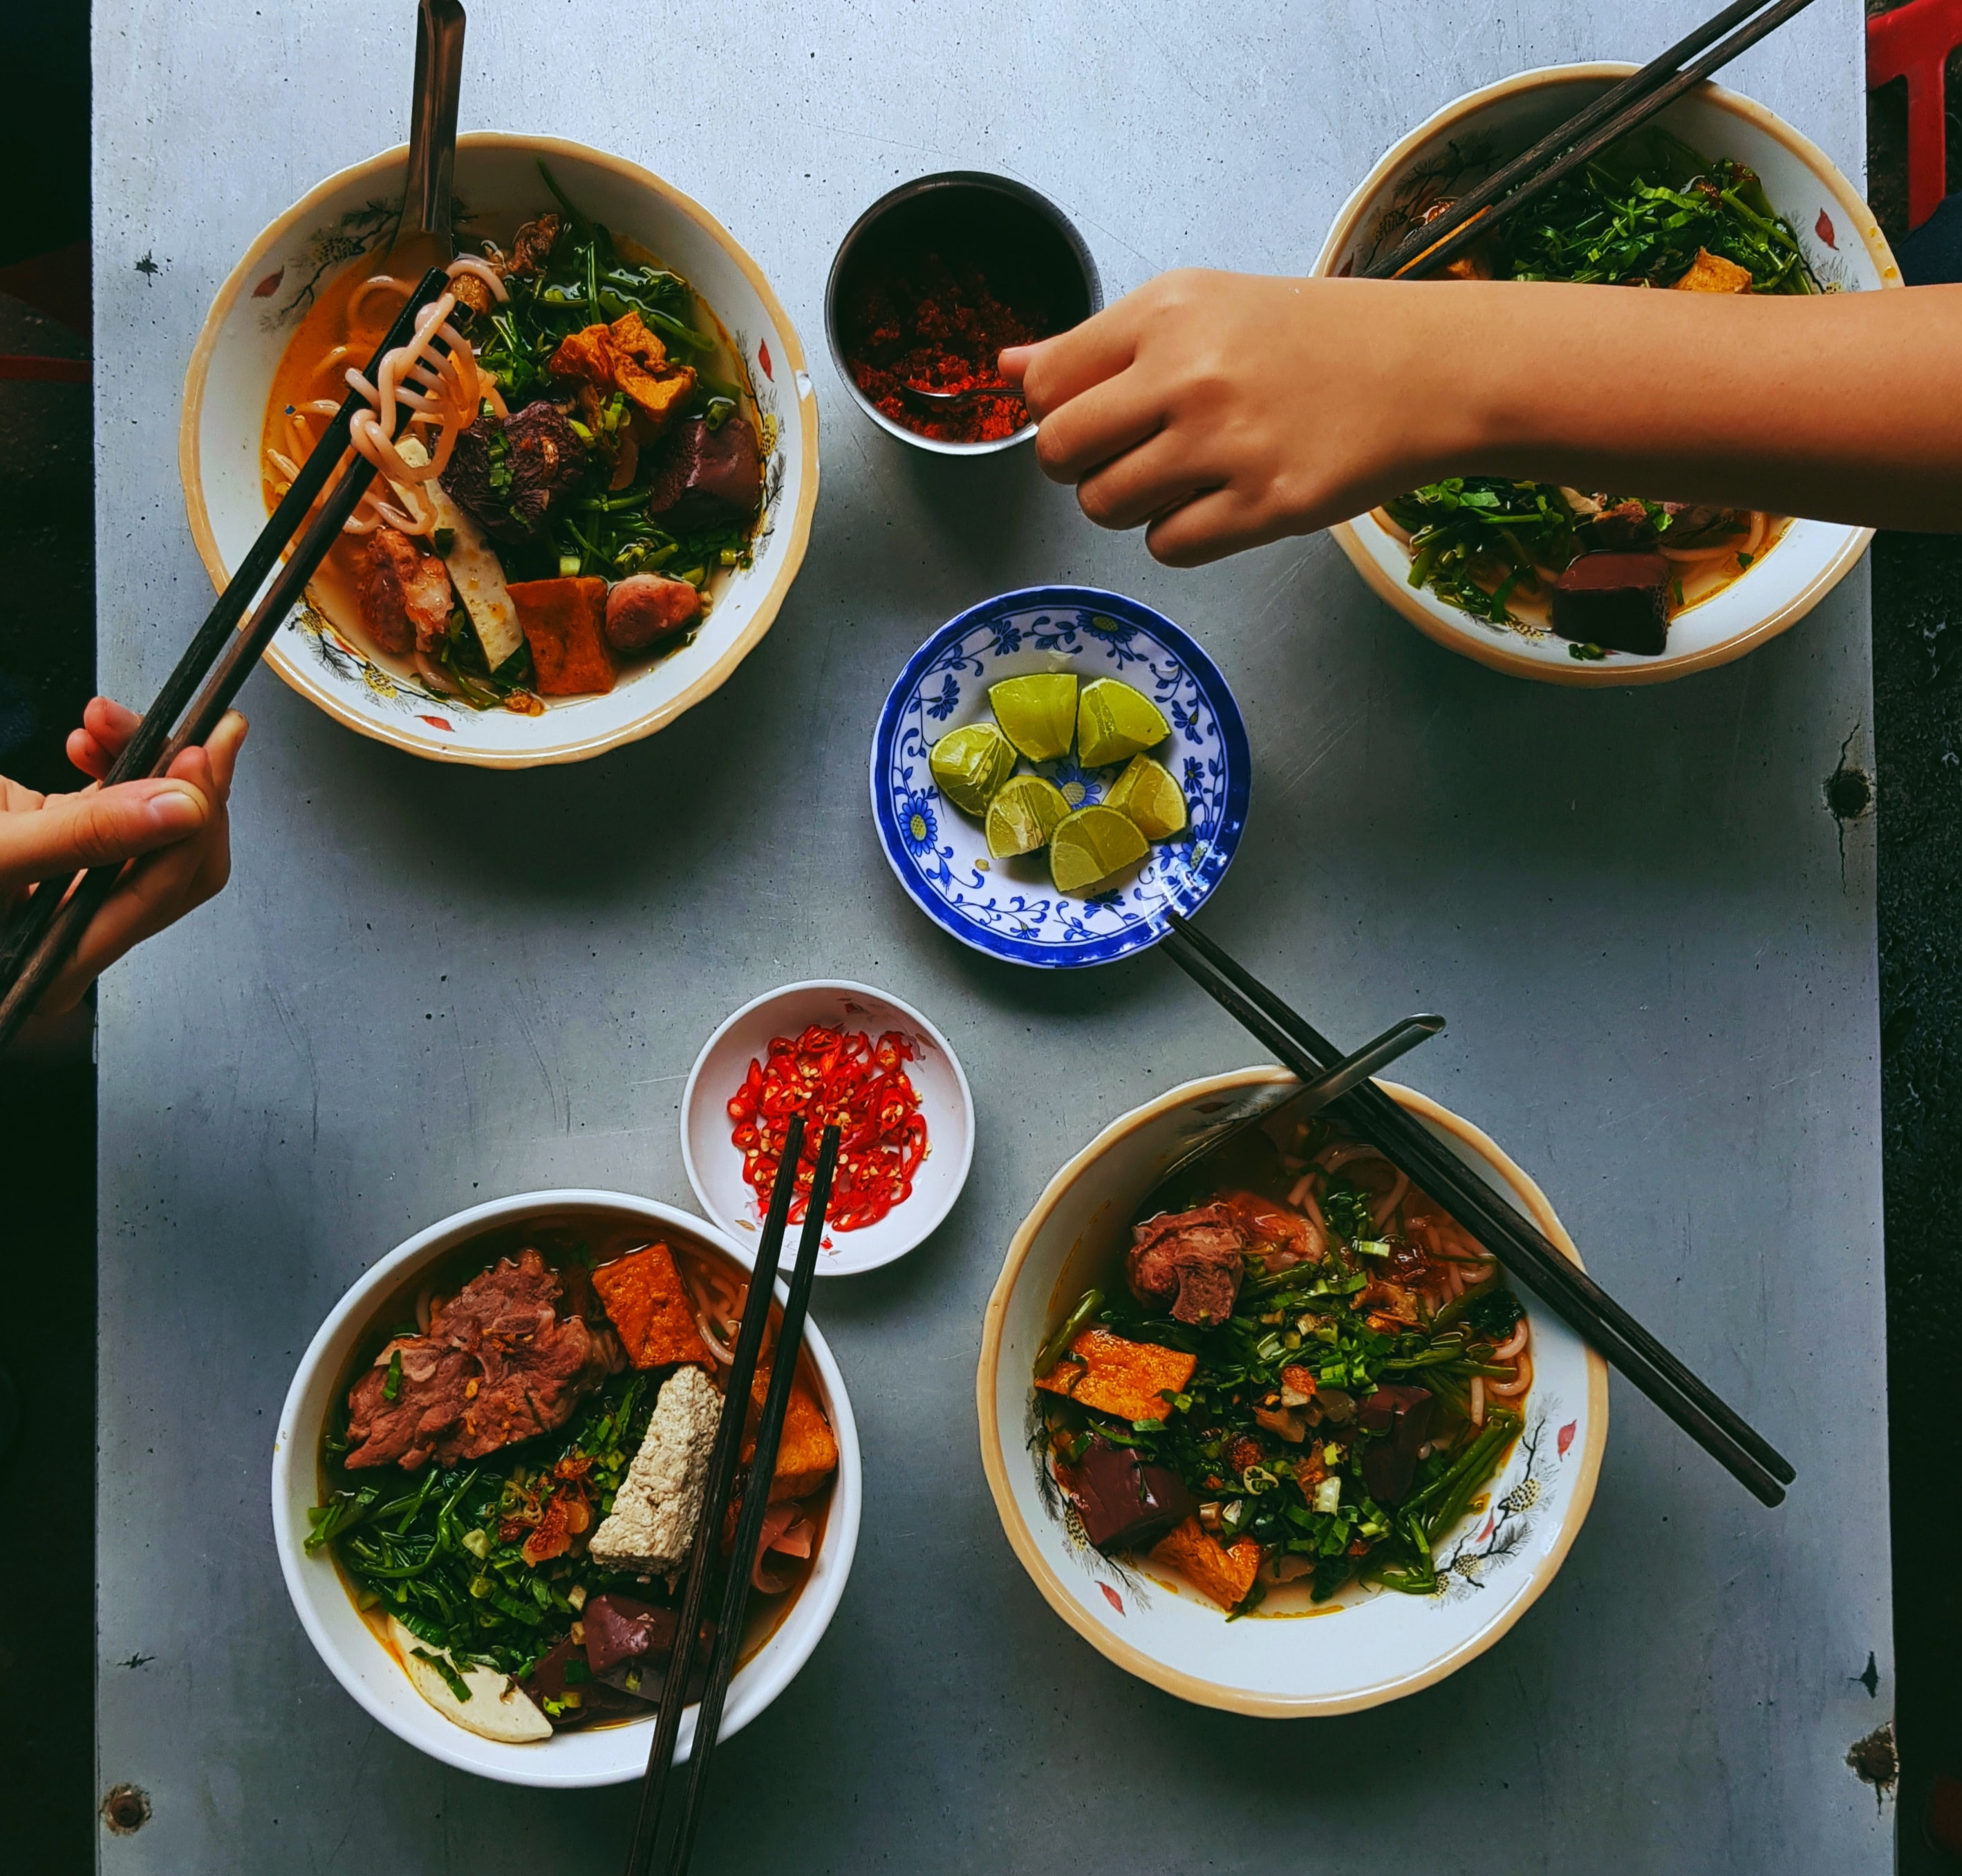 Photo of soup bowls and side dishes on a table with hands reaching toward the food. Image Courtesy of Trung Bui via Unsplash.